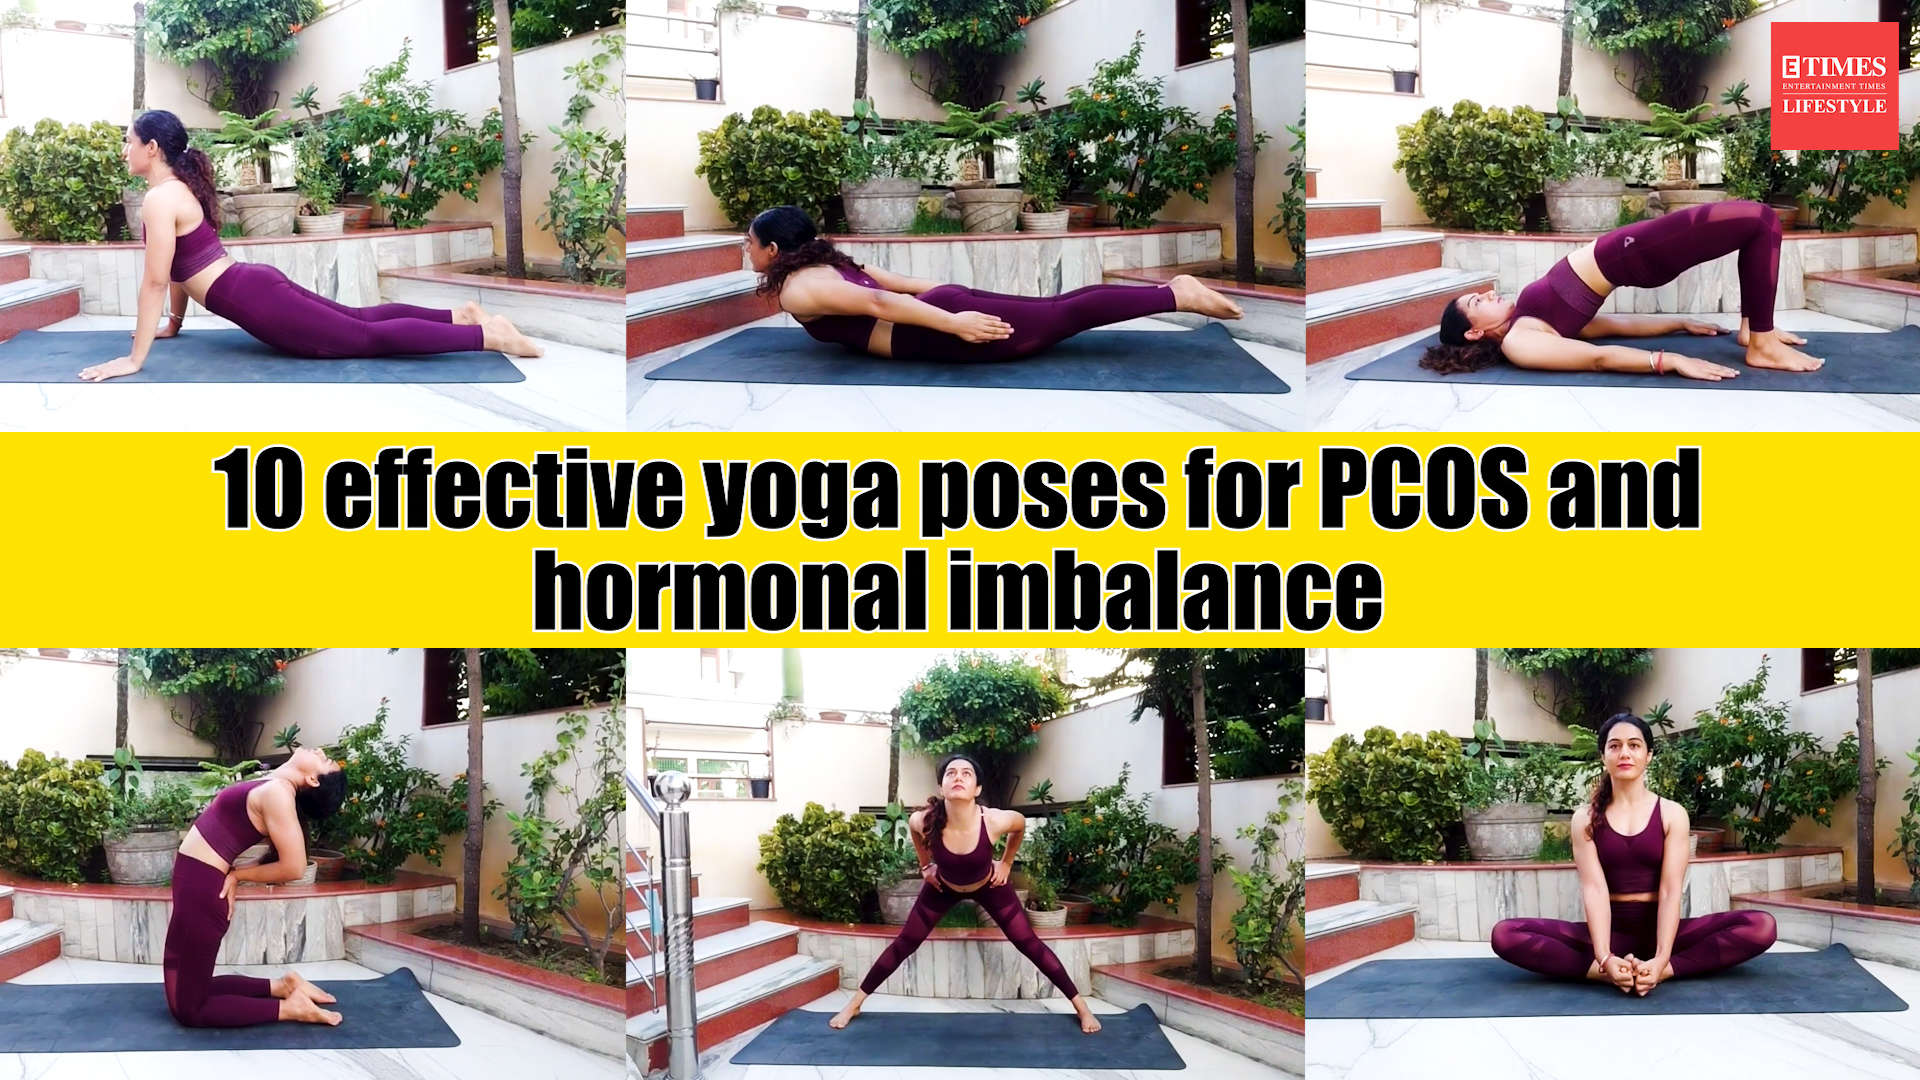 50 effective yoga poses for PCOS and hormonal imbalance   The ...